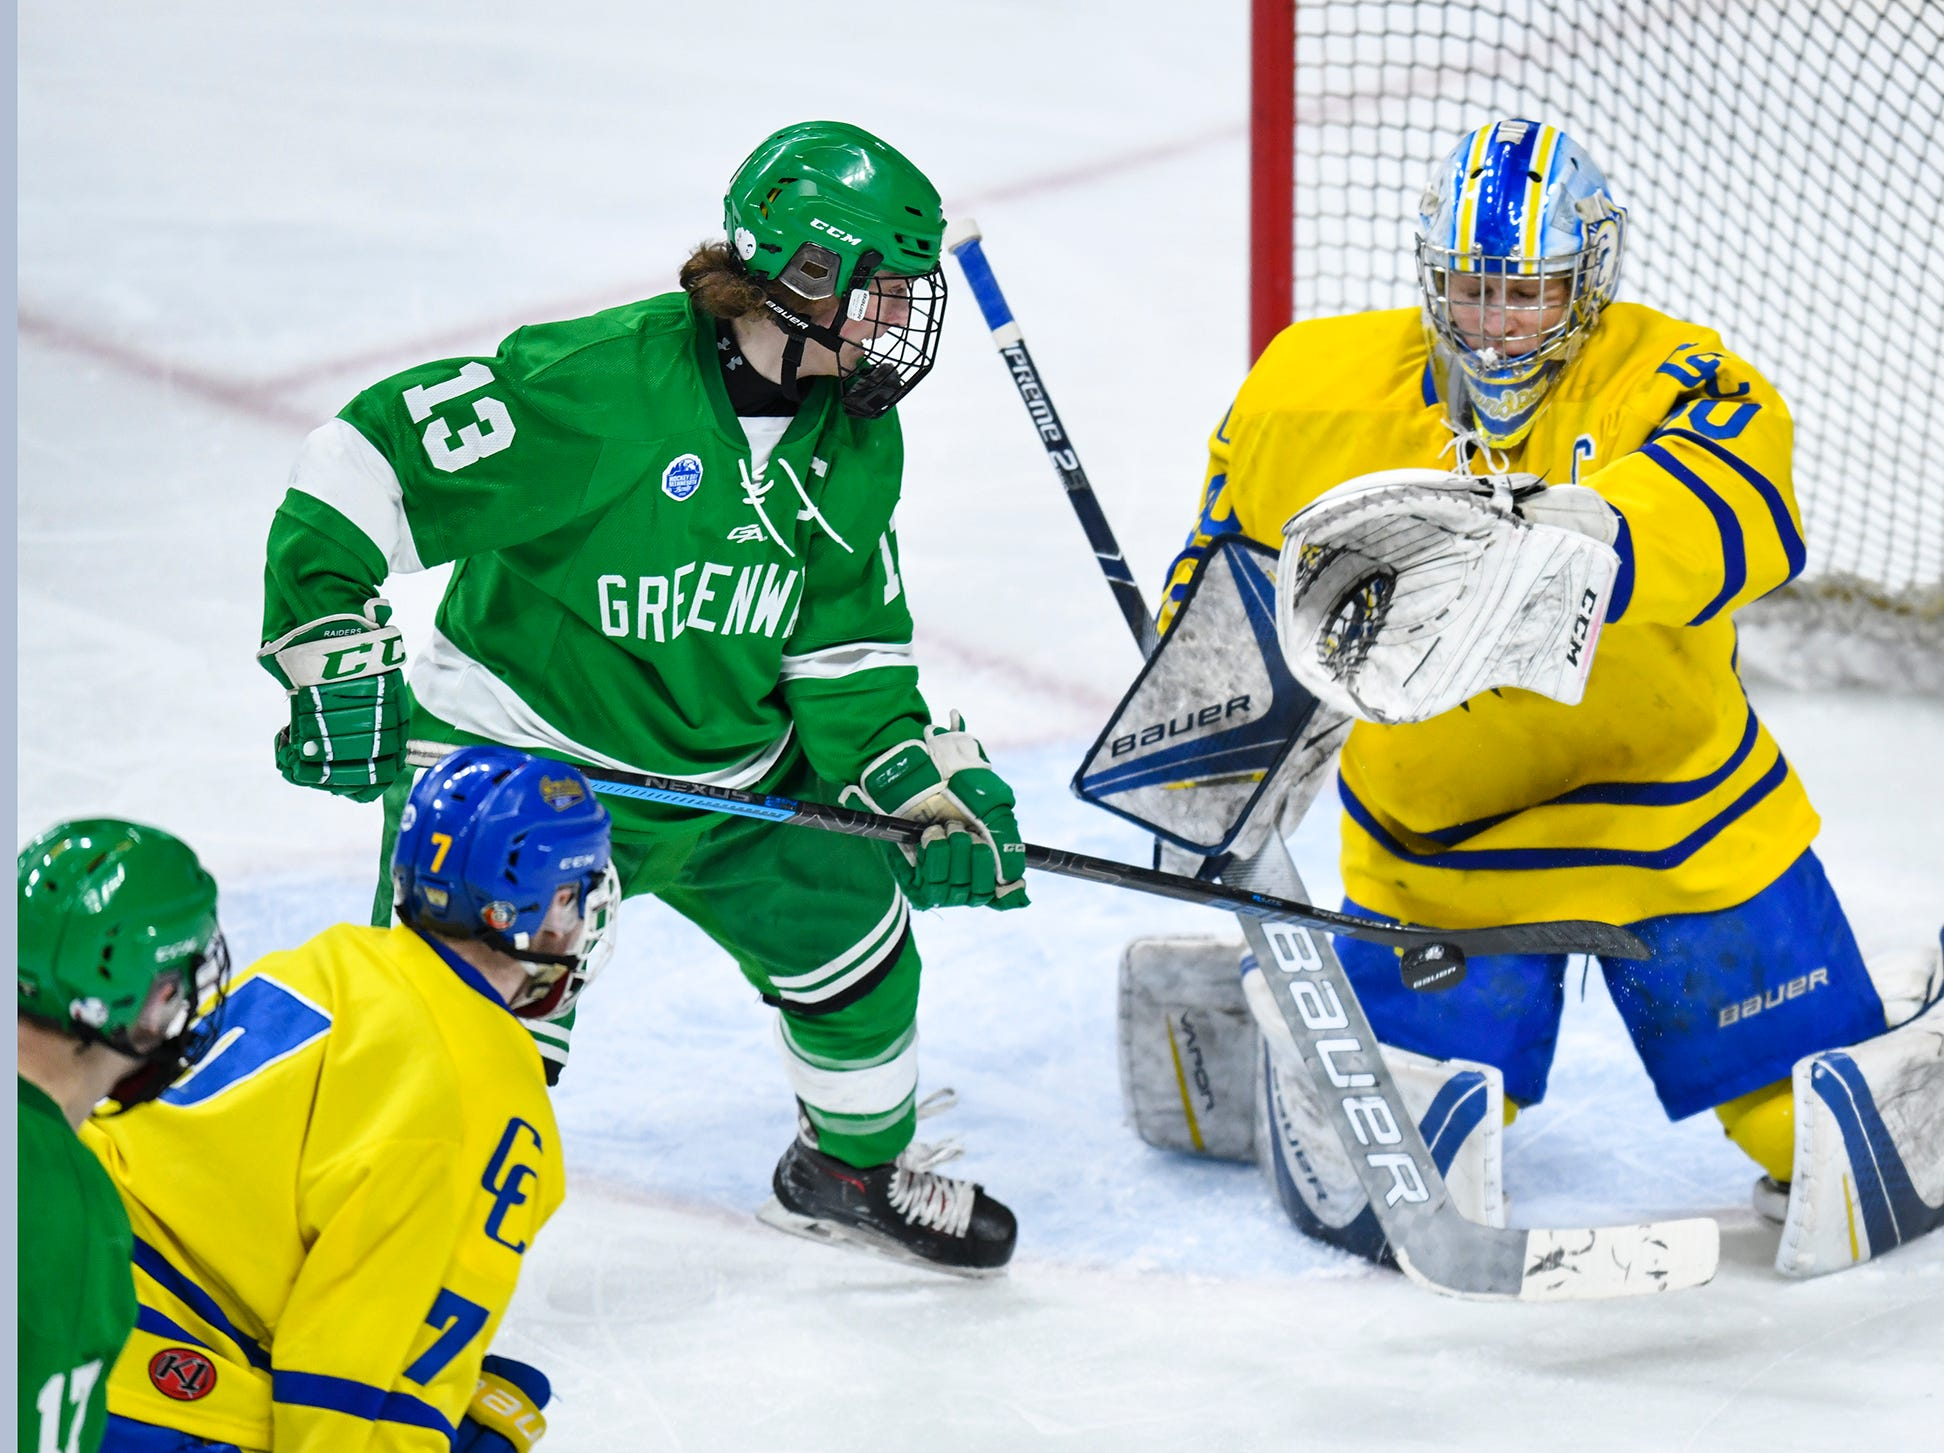 Cathedral goaltender Noah Amundson makes a save during the state Class A championship game Saturday, March 9, 2019, at the Xcel Energy Center in St. Paul.